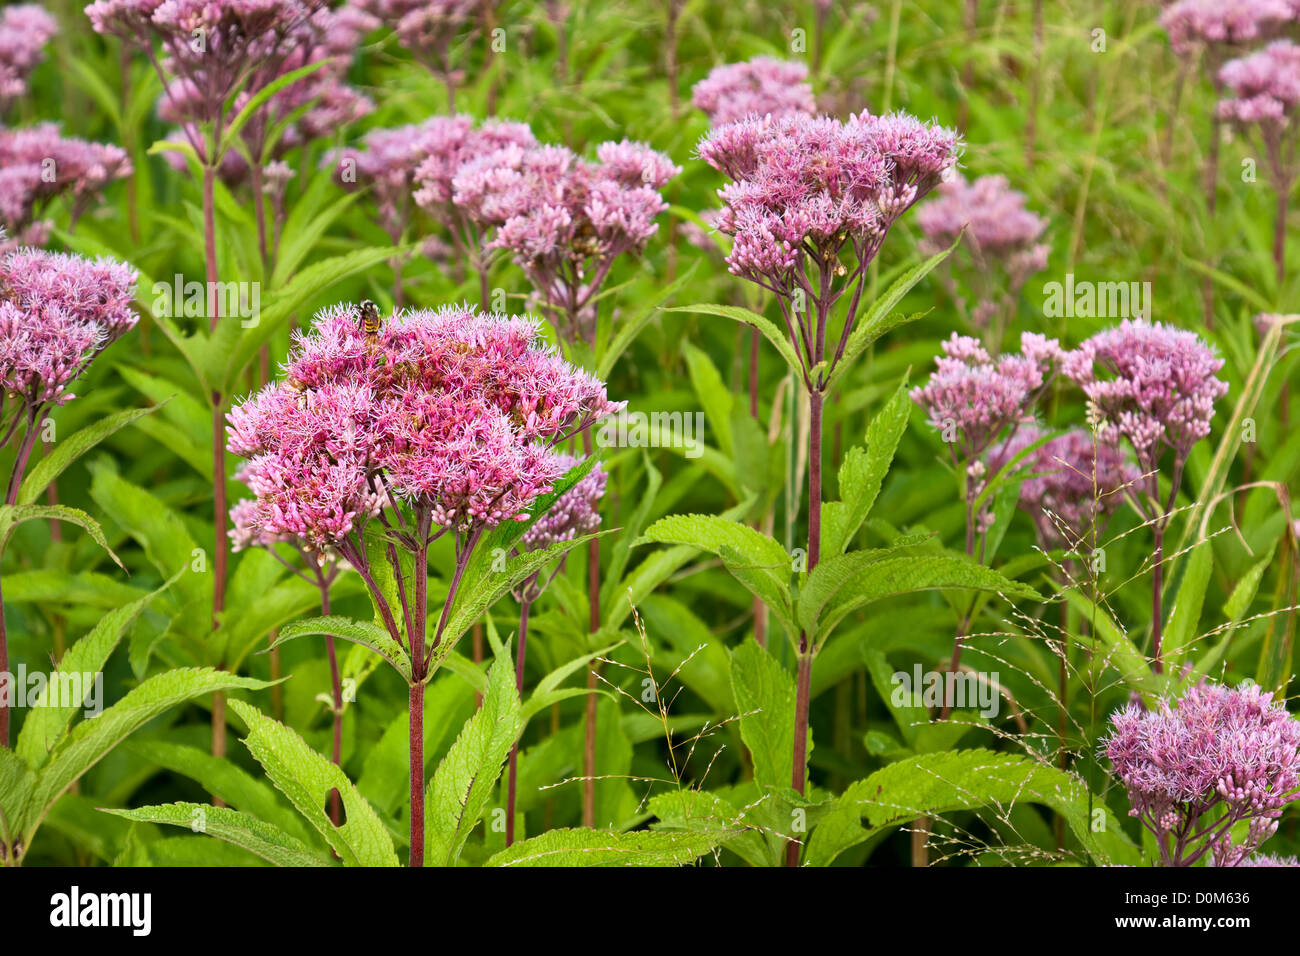 Joe-Pye Weed wild flowers, Eutrochium, growing in a field - Stock Image